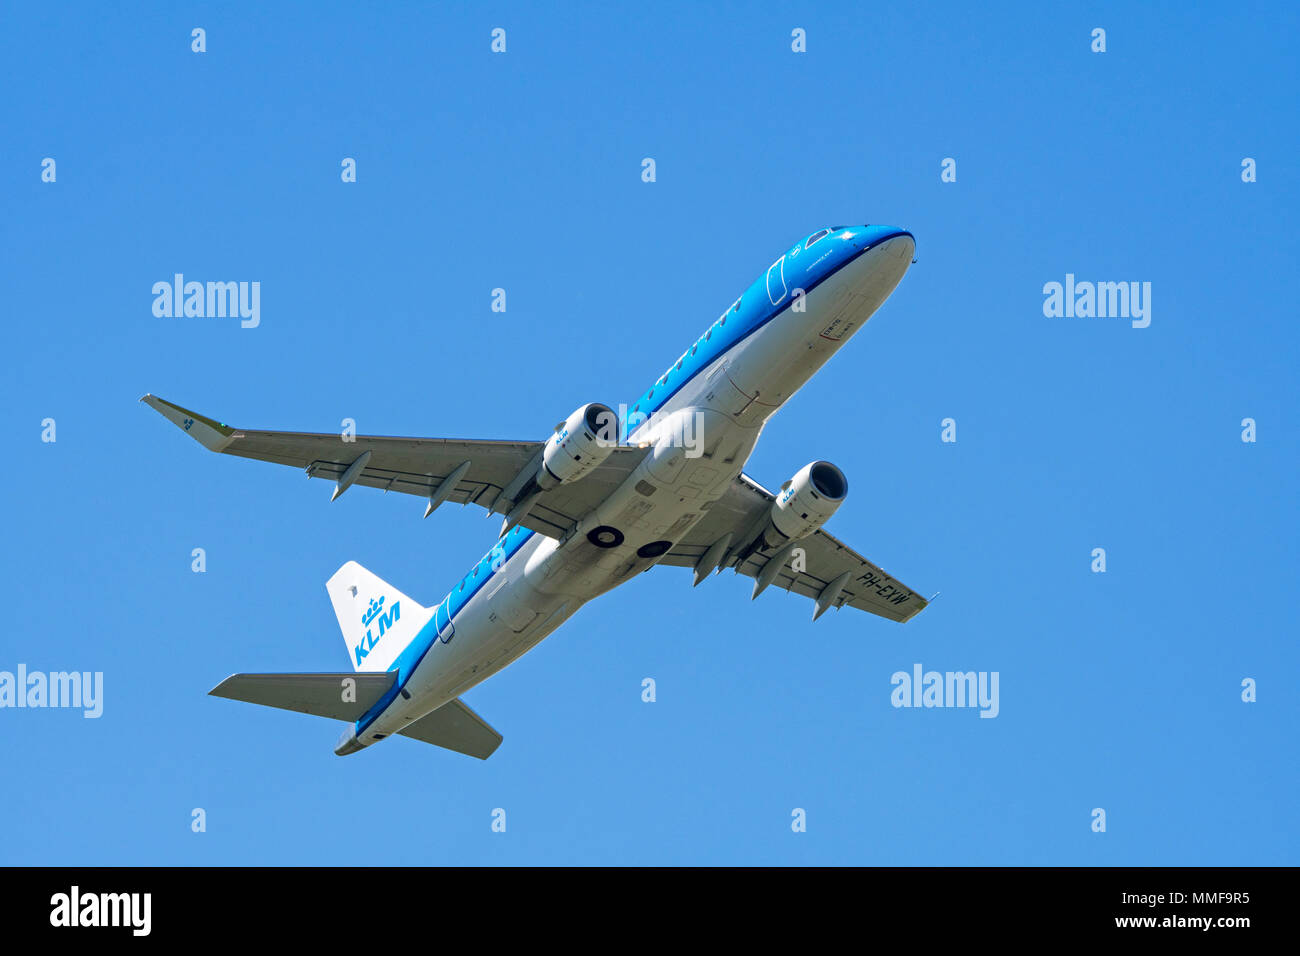 KLM Cityhopper Embraer 175, medium-range twin-engine jet airliner in flight - Stock Image